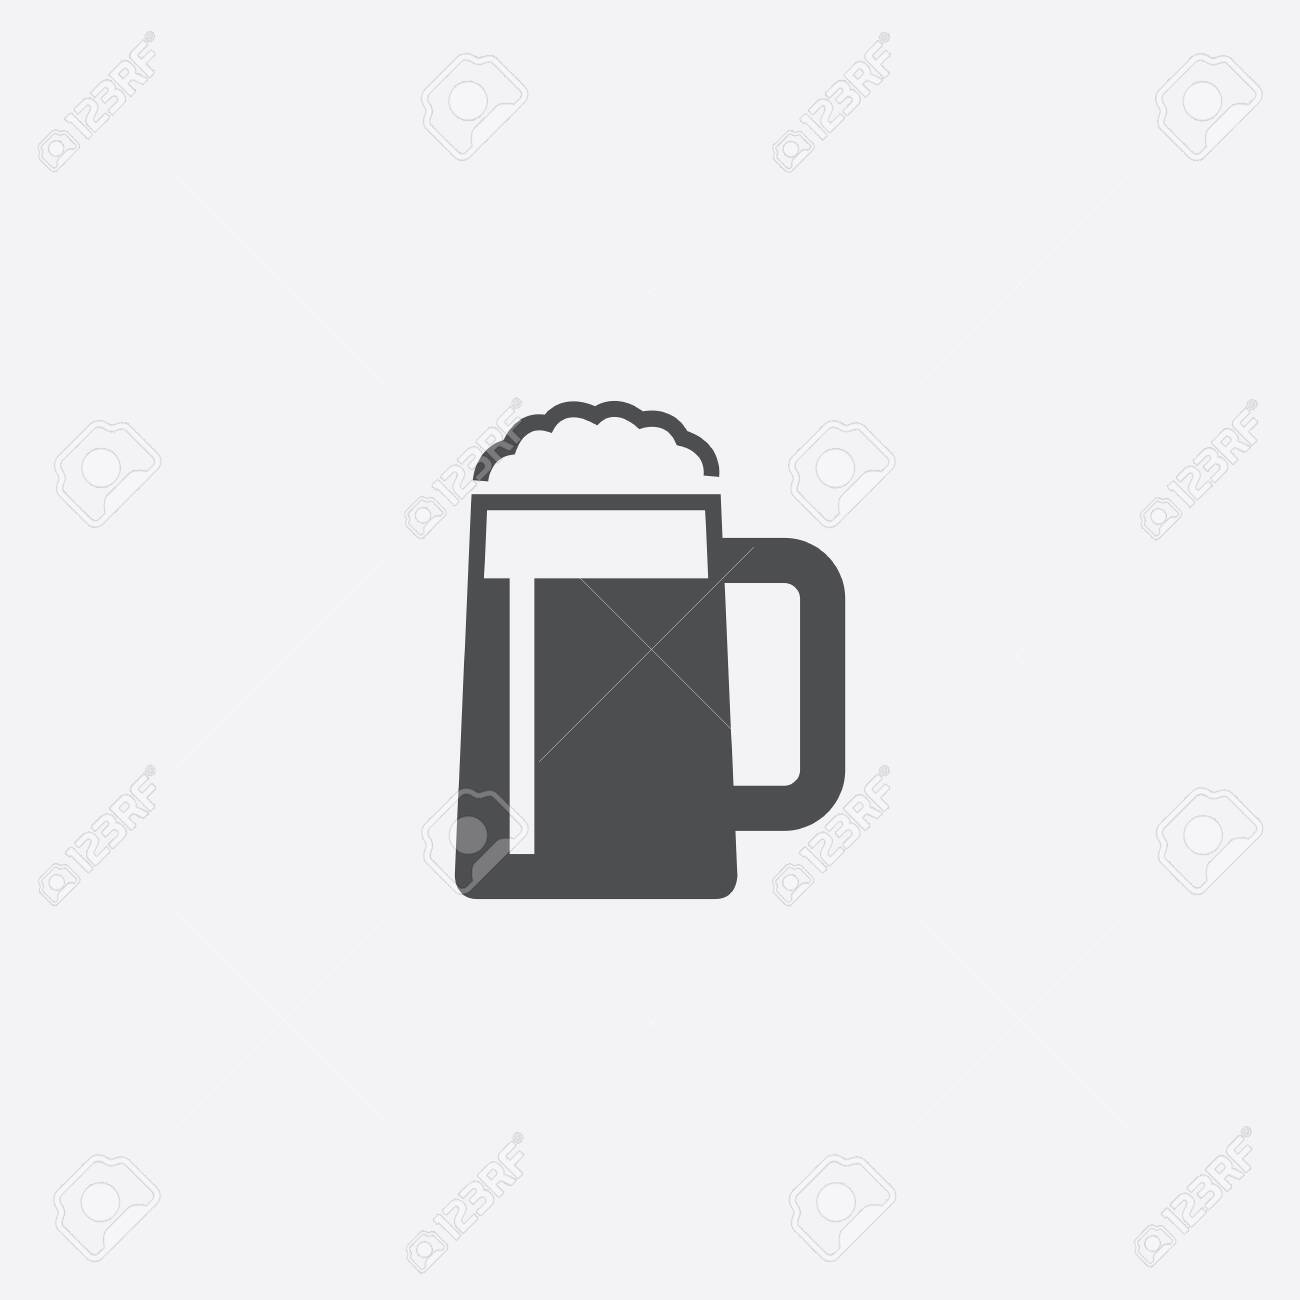 glass of beer icon - 143431876